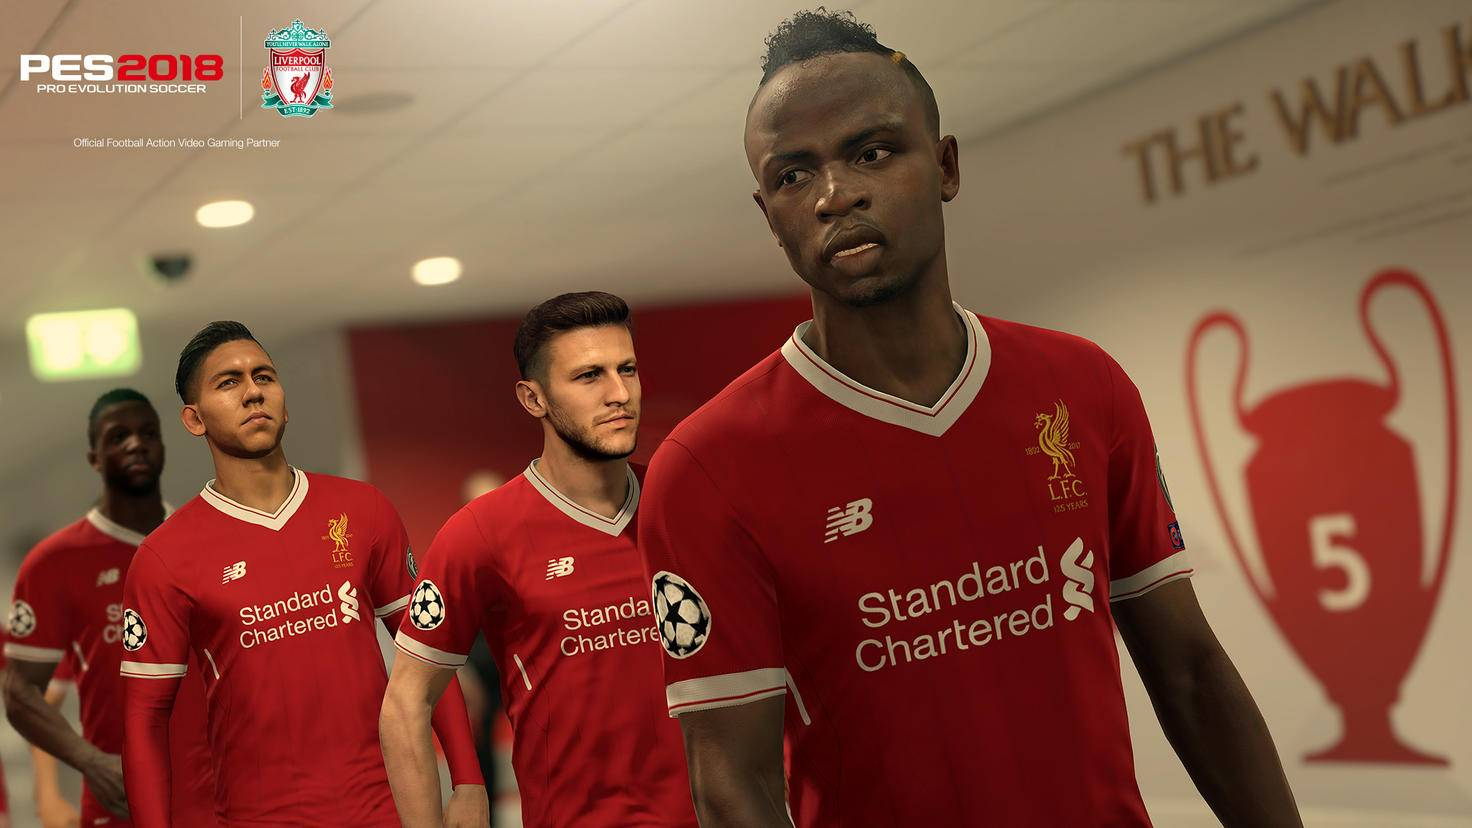 PES2018: Liverpool Anfield-Tunnel